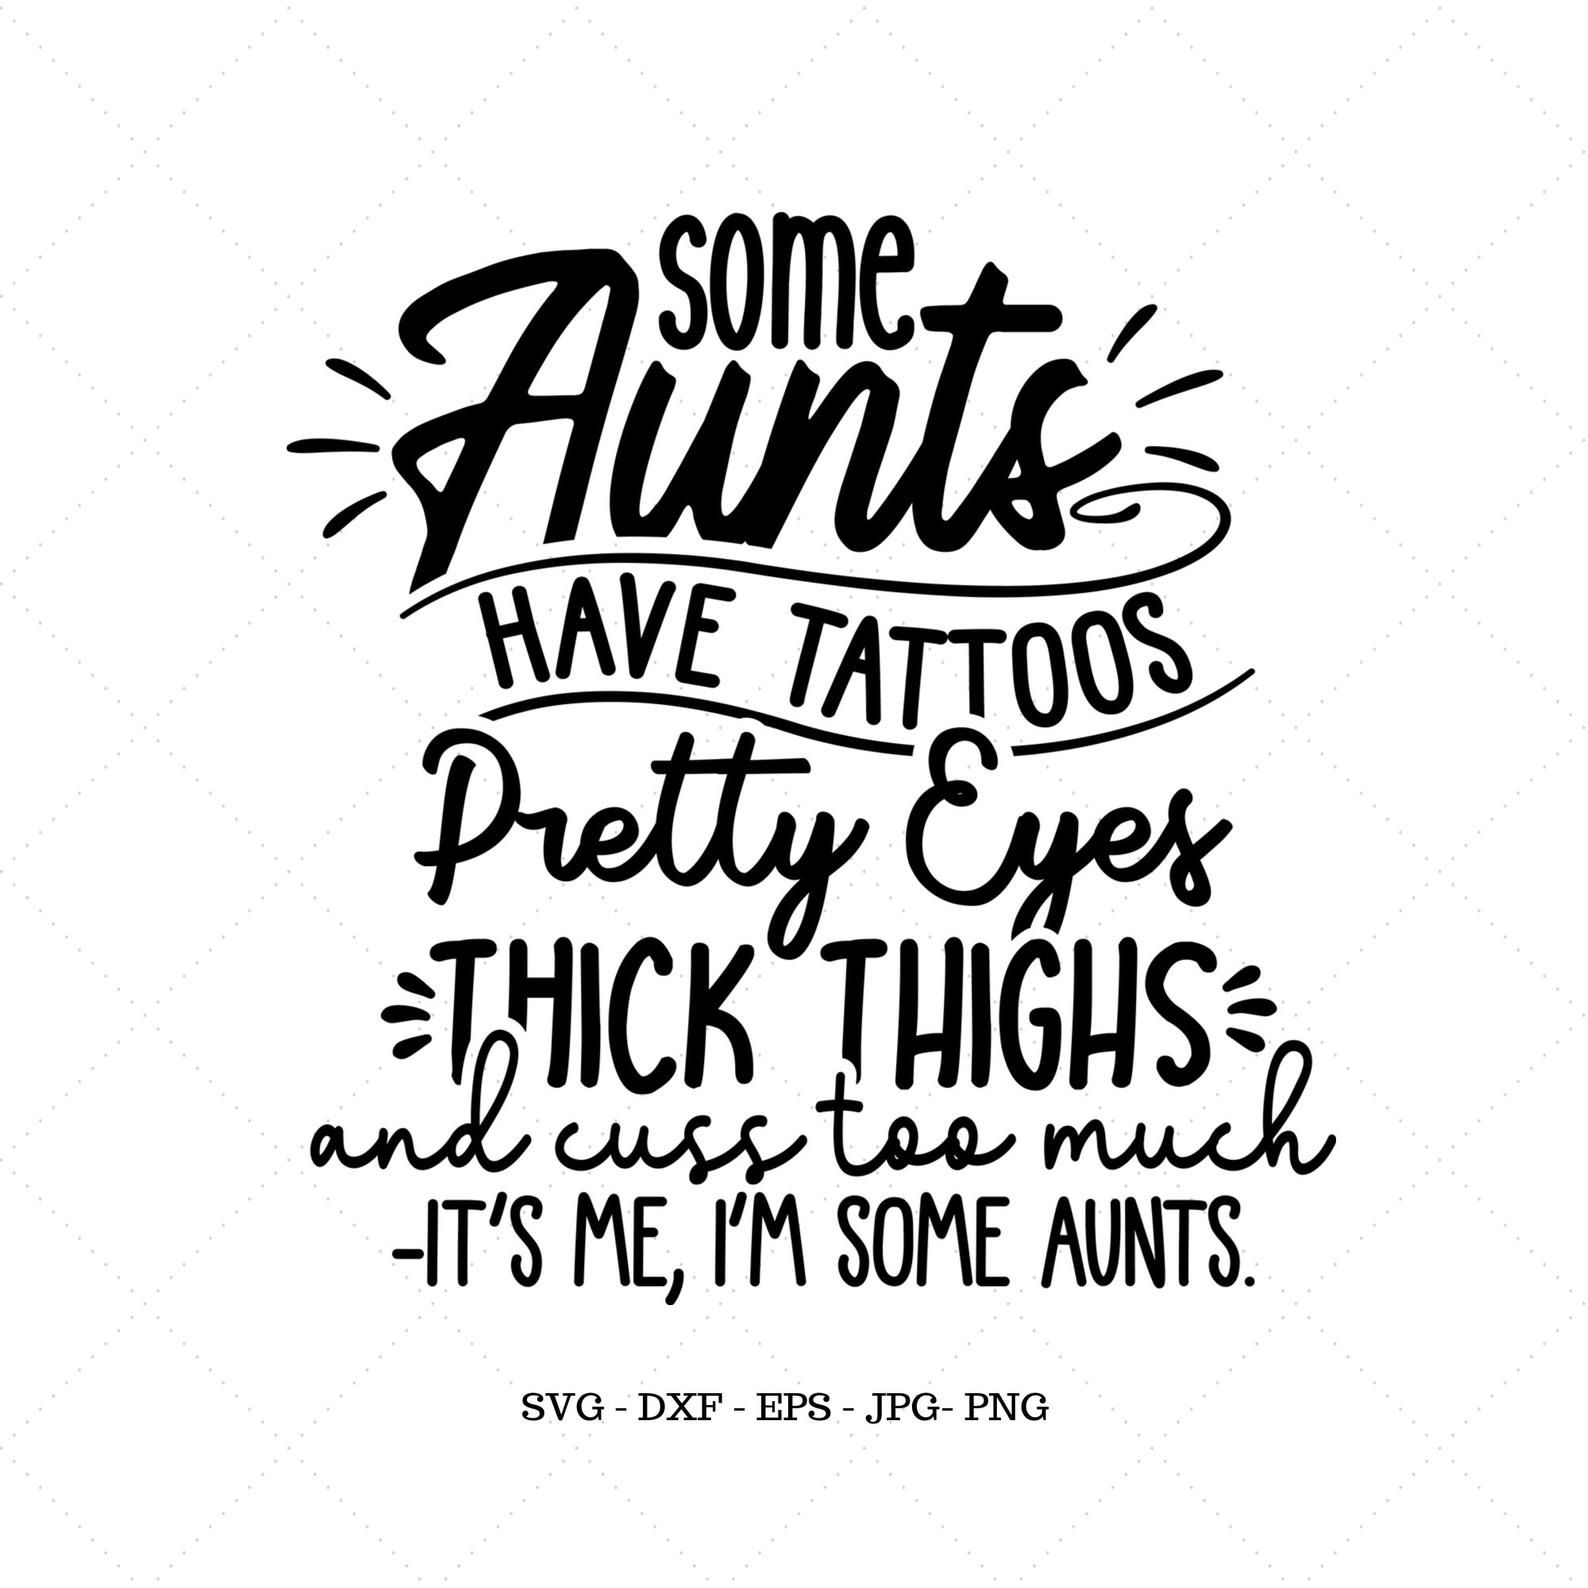 Funny Aunt Gift Aunt Svg Aunt Shirt Thick Thighs From | Etsy